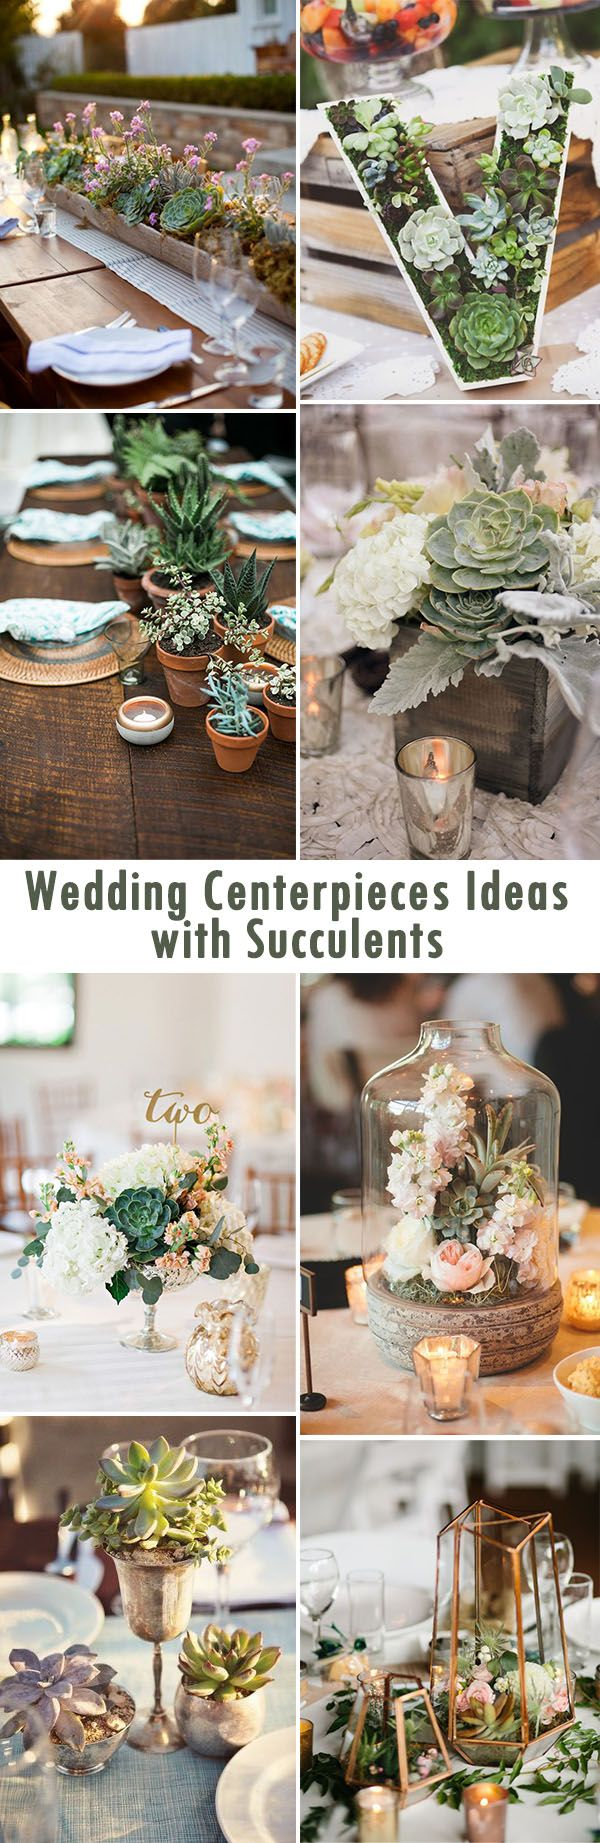 Succulents are the perfect addition to a wedding and can serve as a centerpiece! | ElegantWeddingInvites